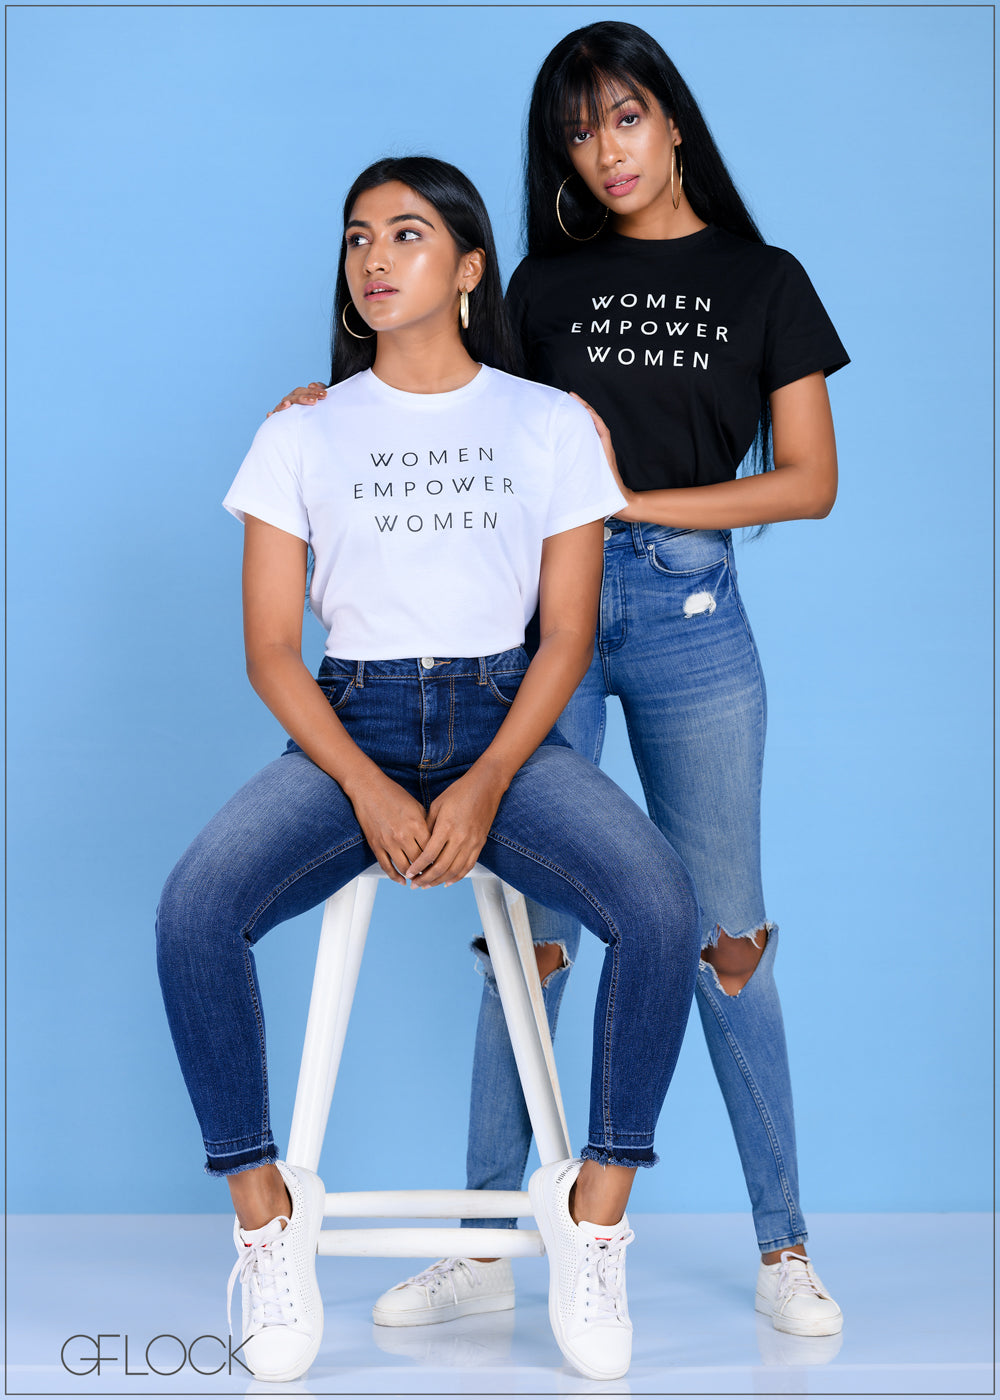 Women Empower Women - Graphic Tee - Knit 1011